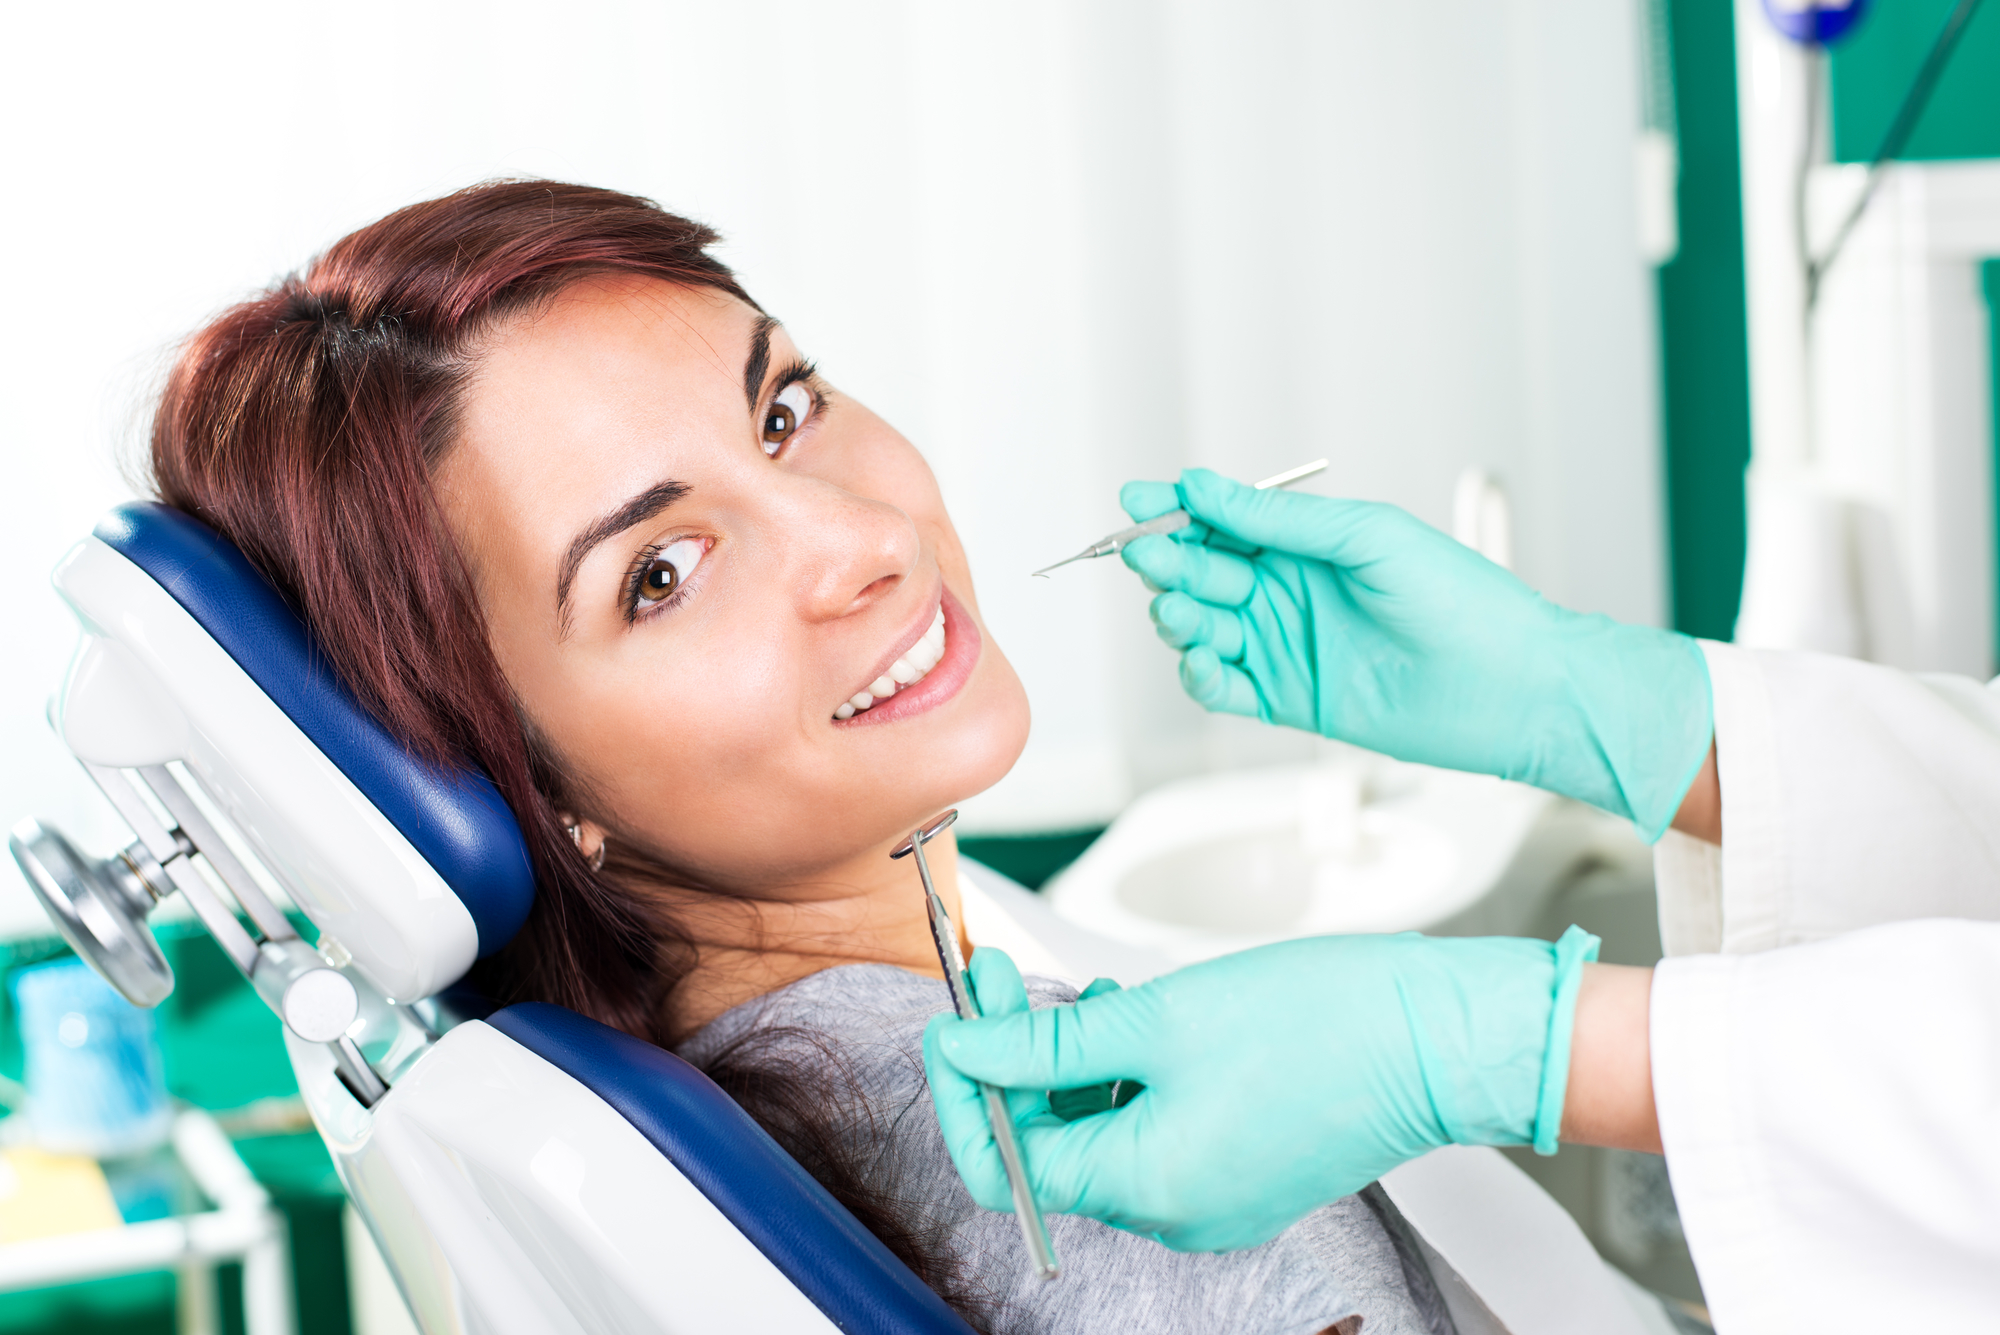 who is the best dentist pembroke pines?